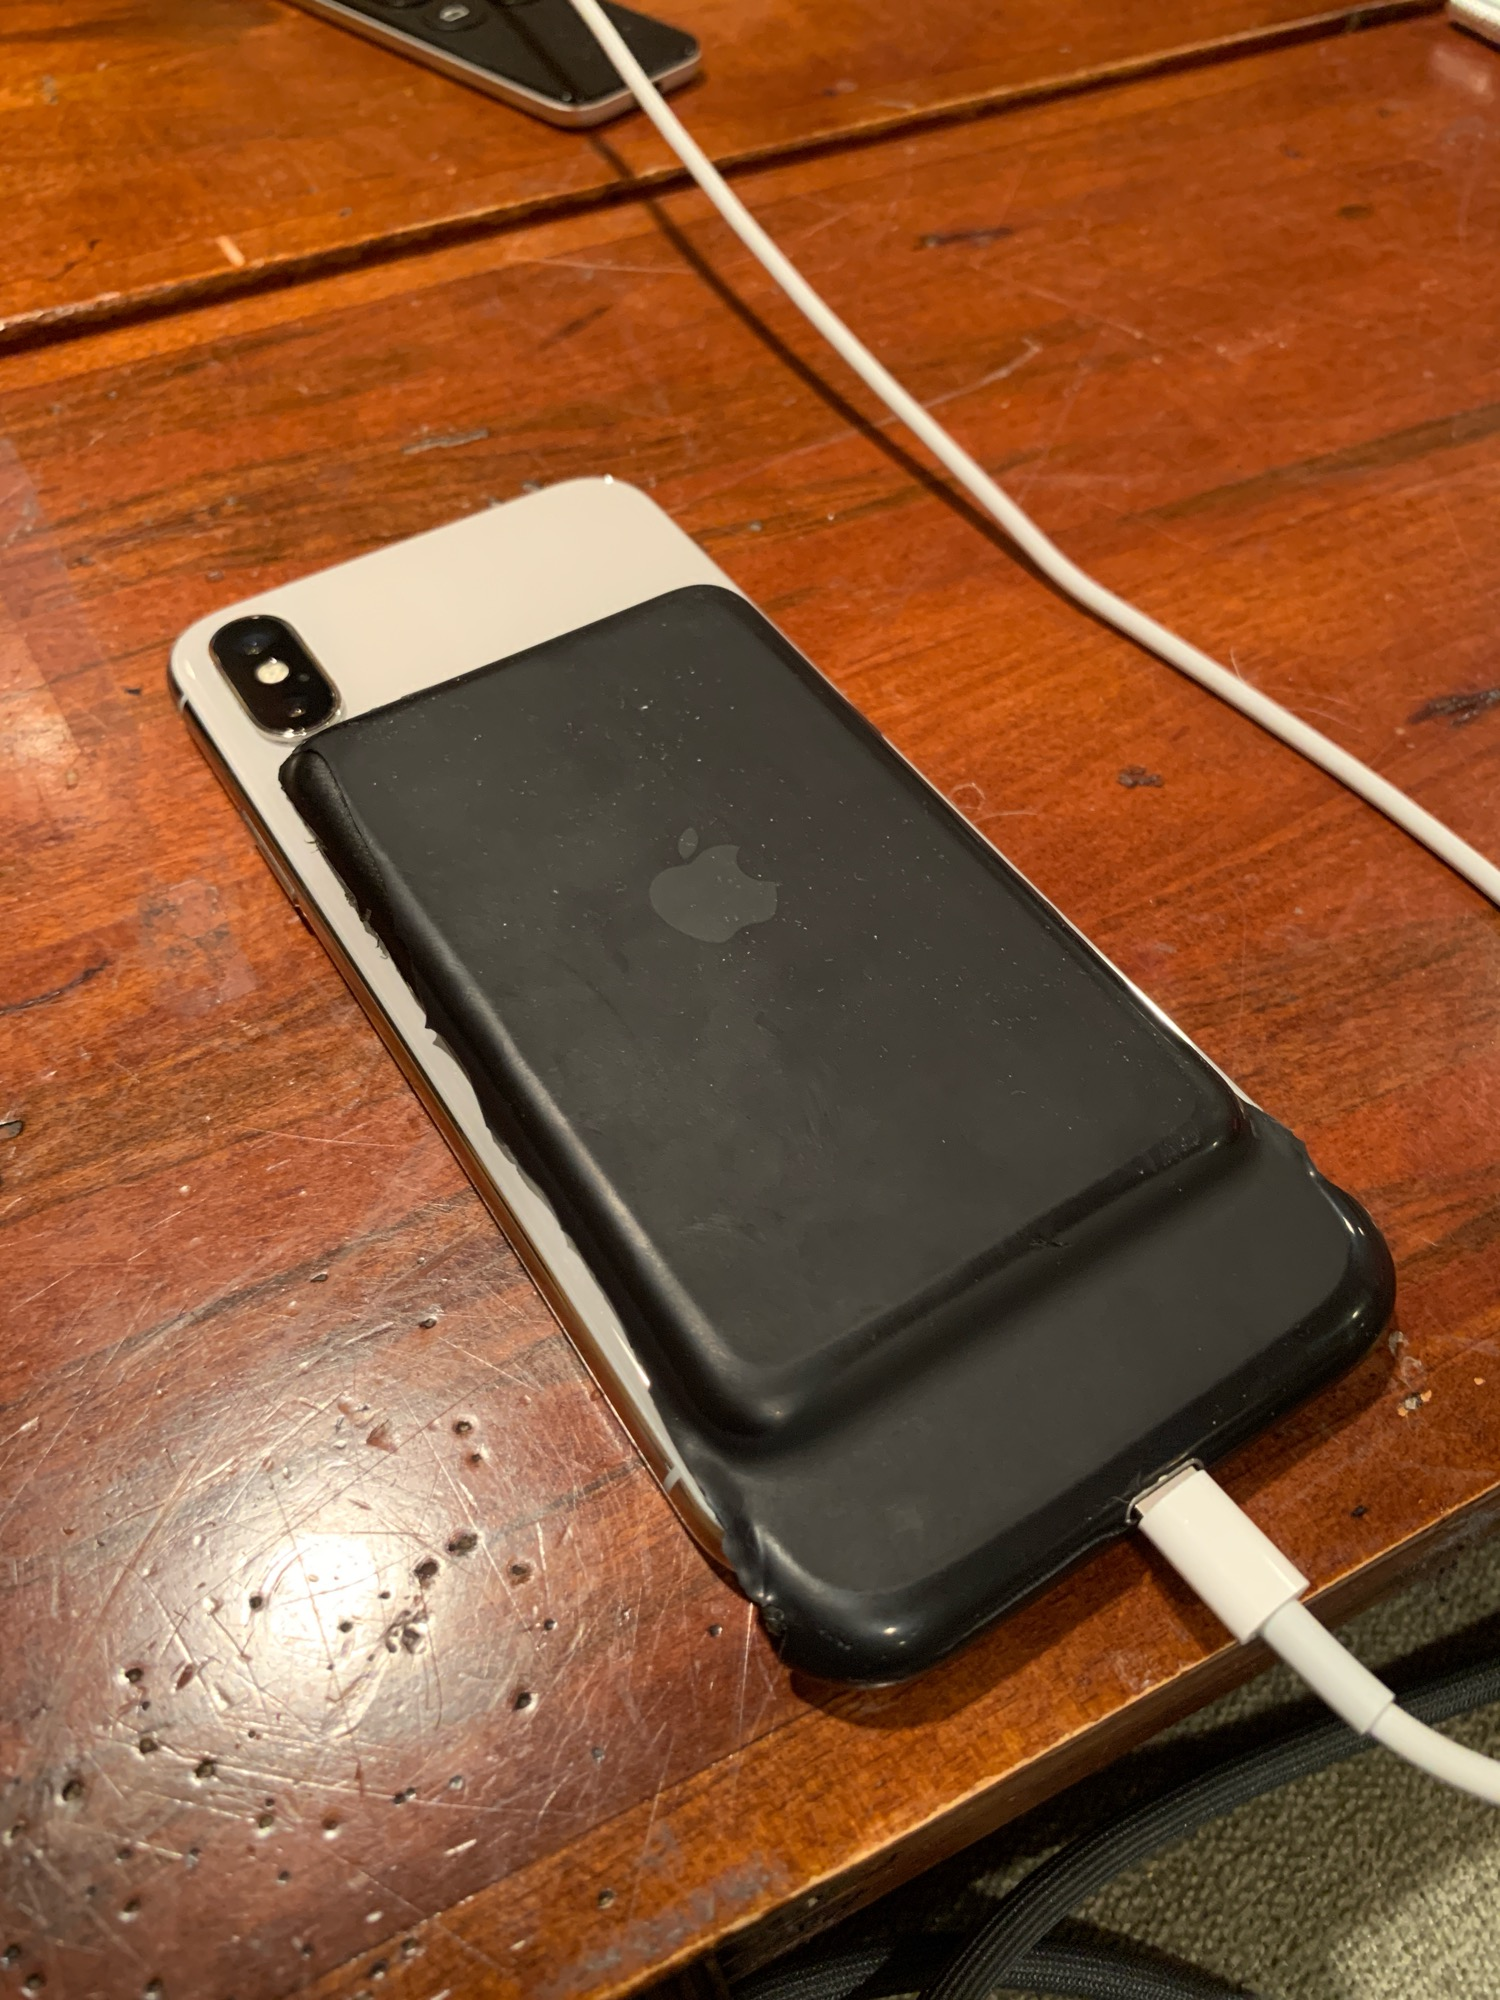 Smart Battery Case cortada para caber num iPhone X